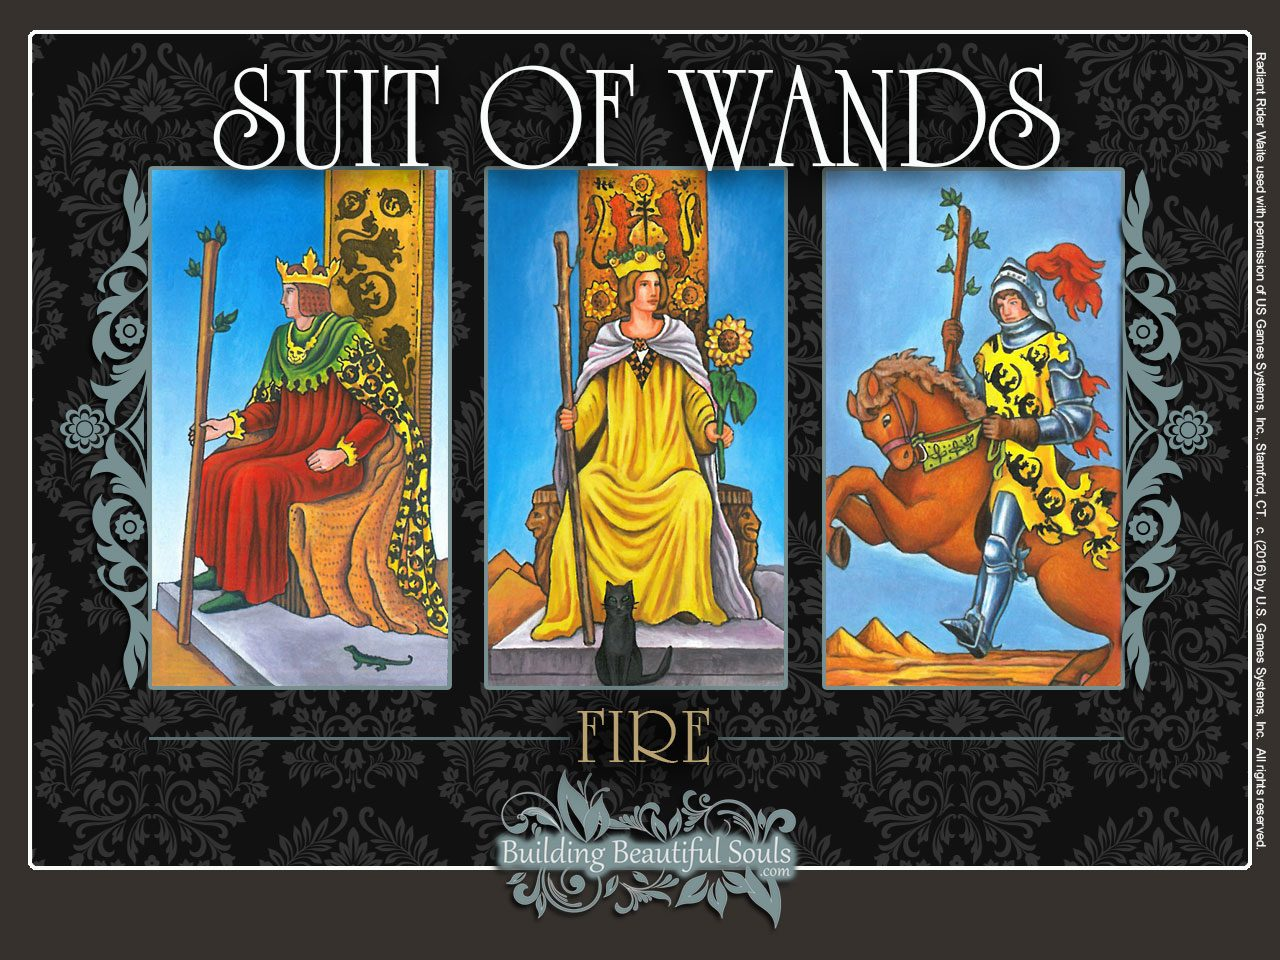 Suit of Wands Tarot Card Meanings Rider Waite Tarot Deck 1280x960